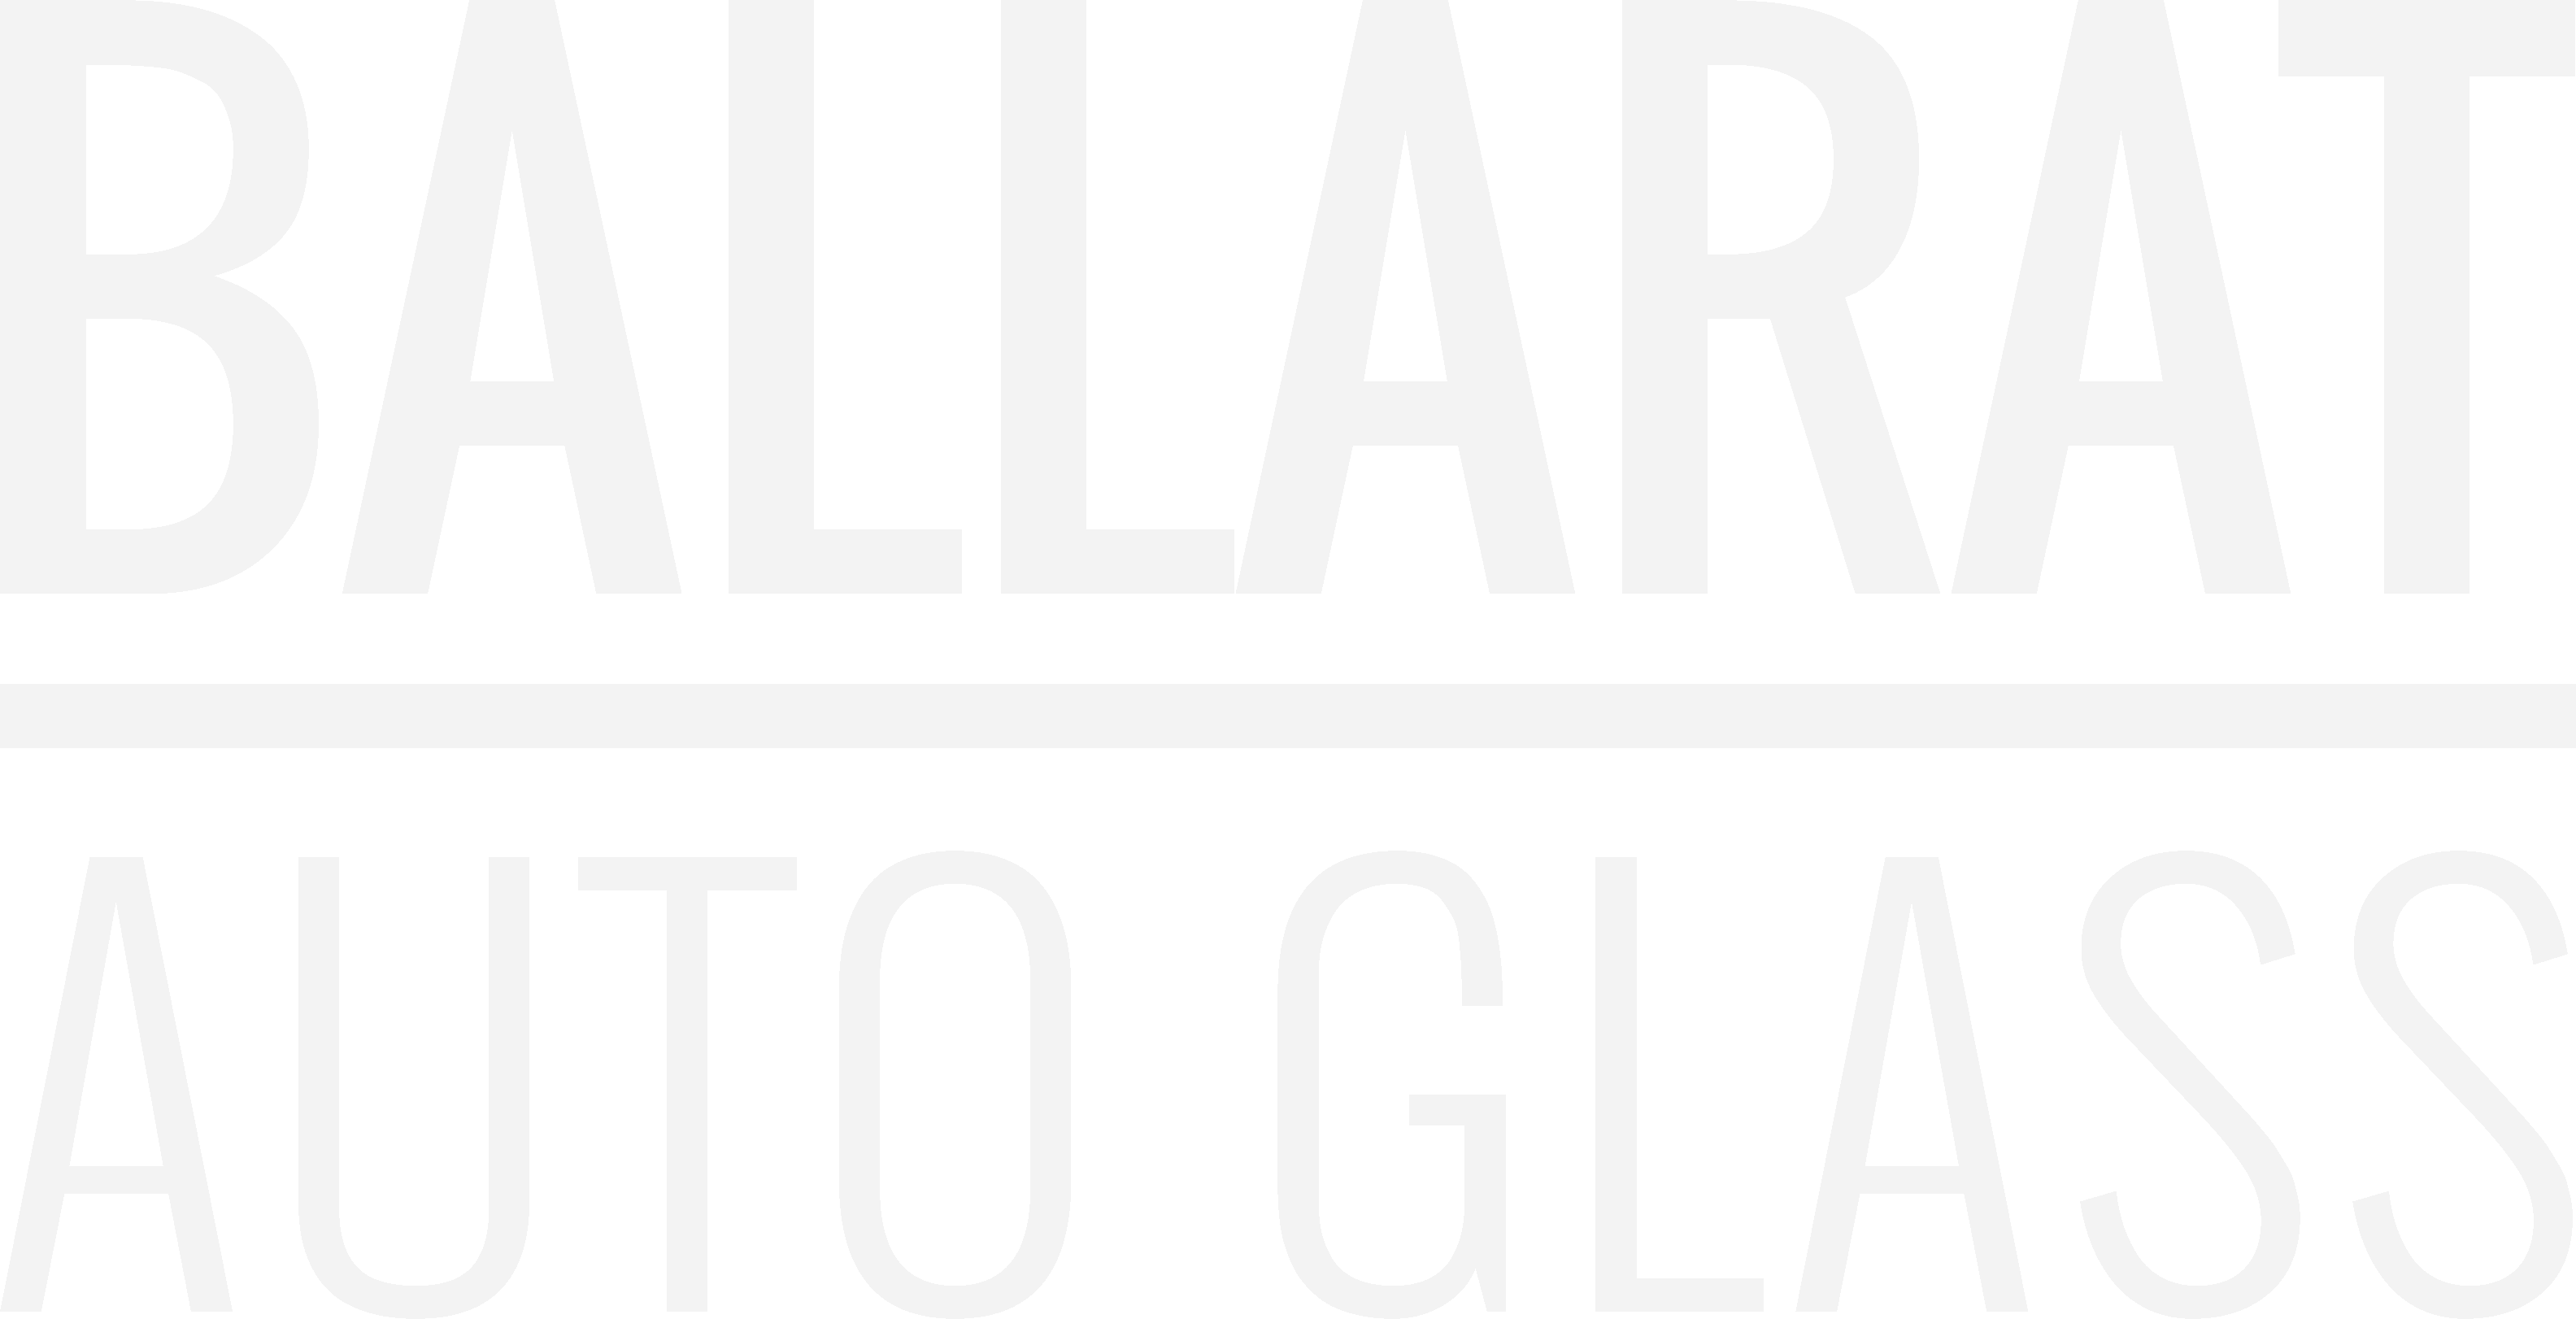 Hour Glass Repair Ballarat